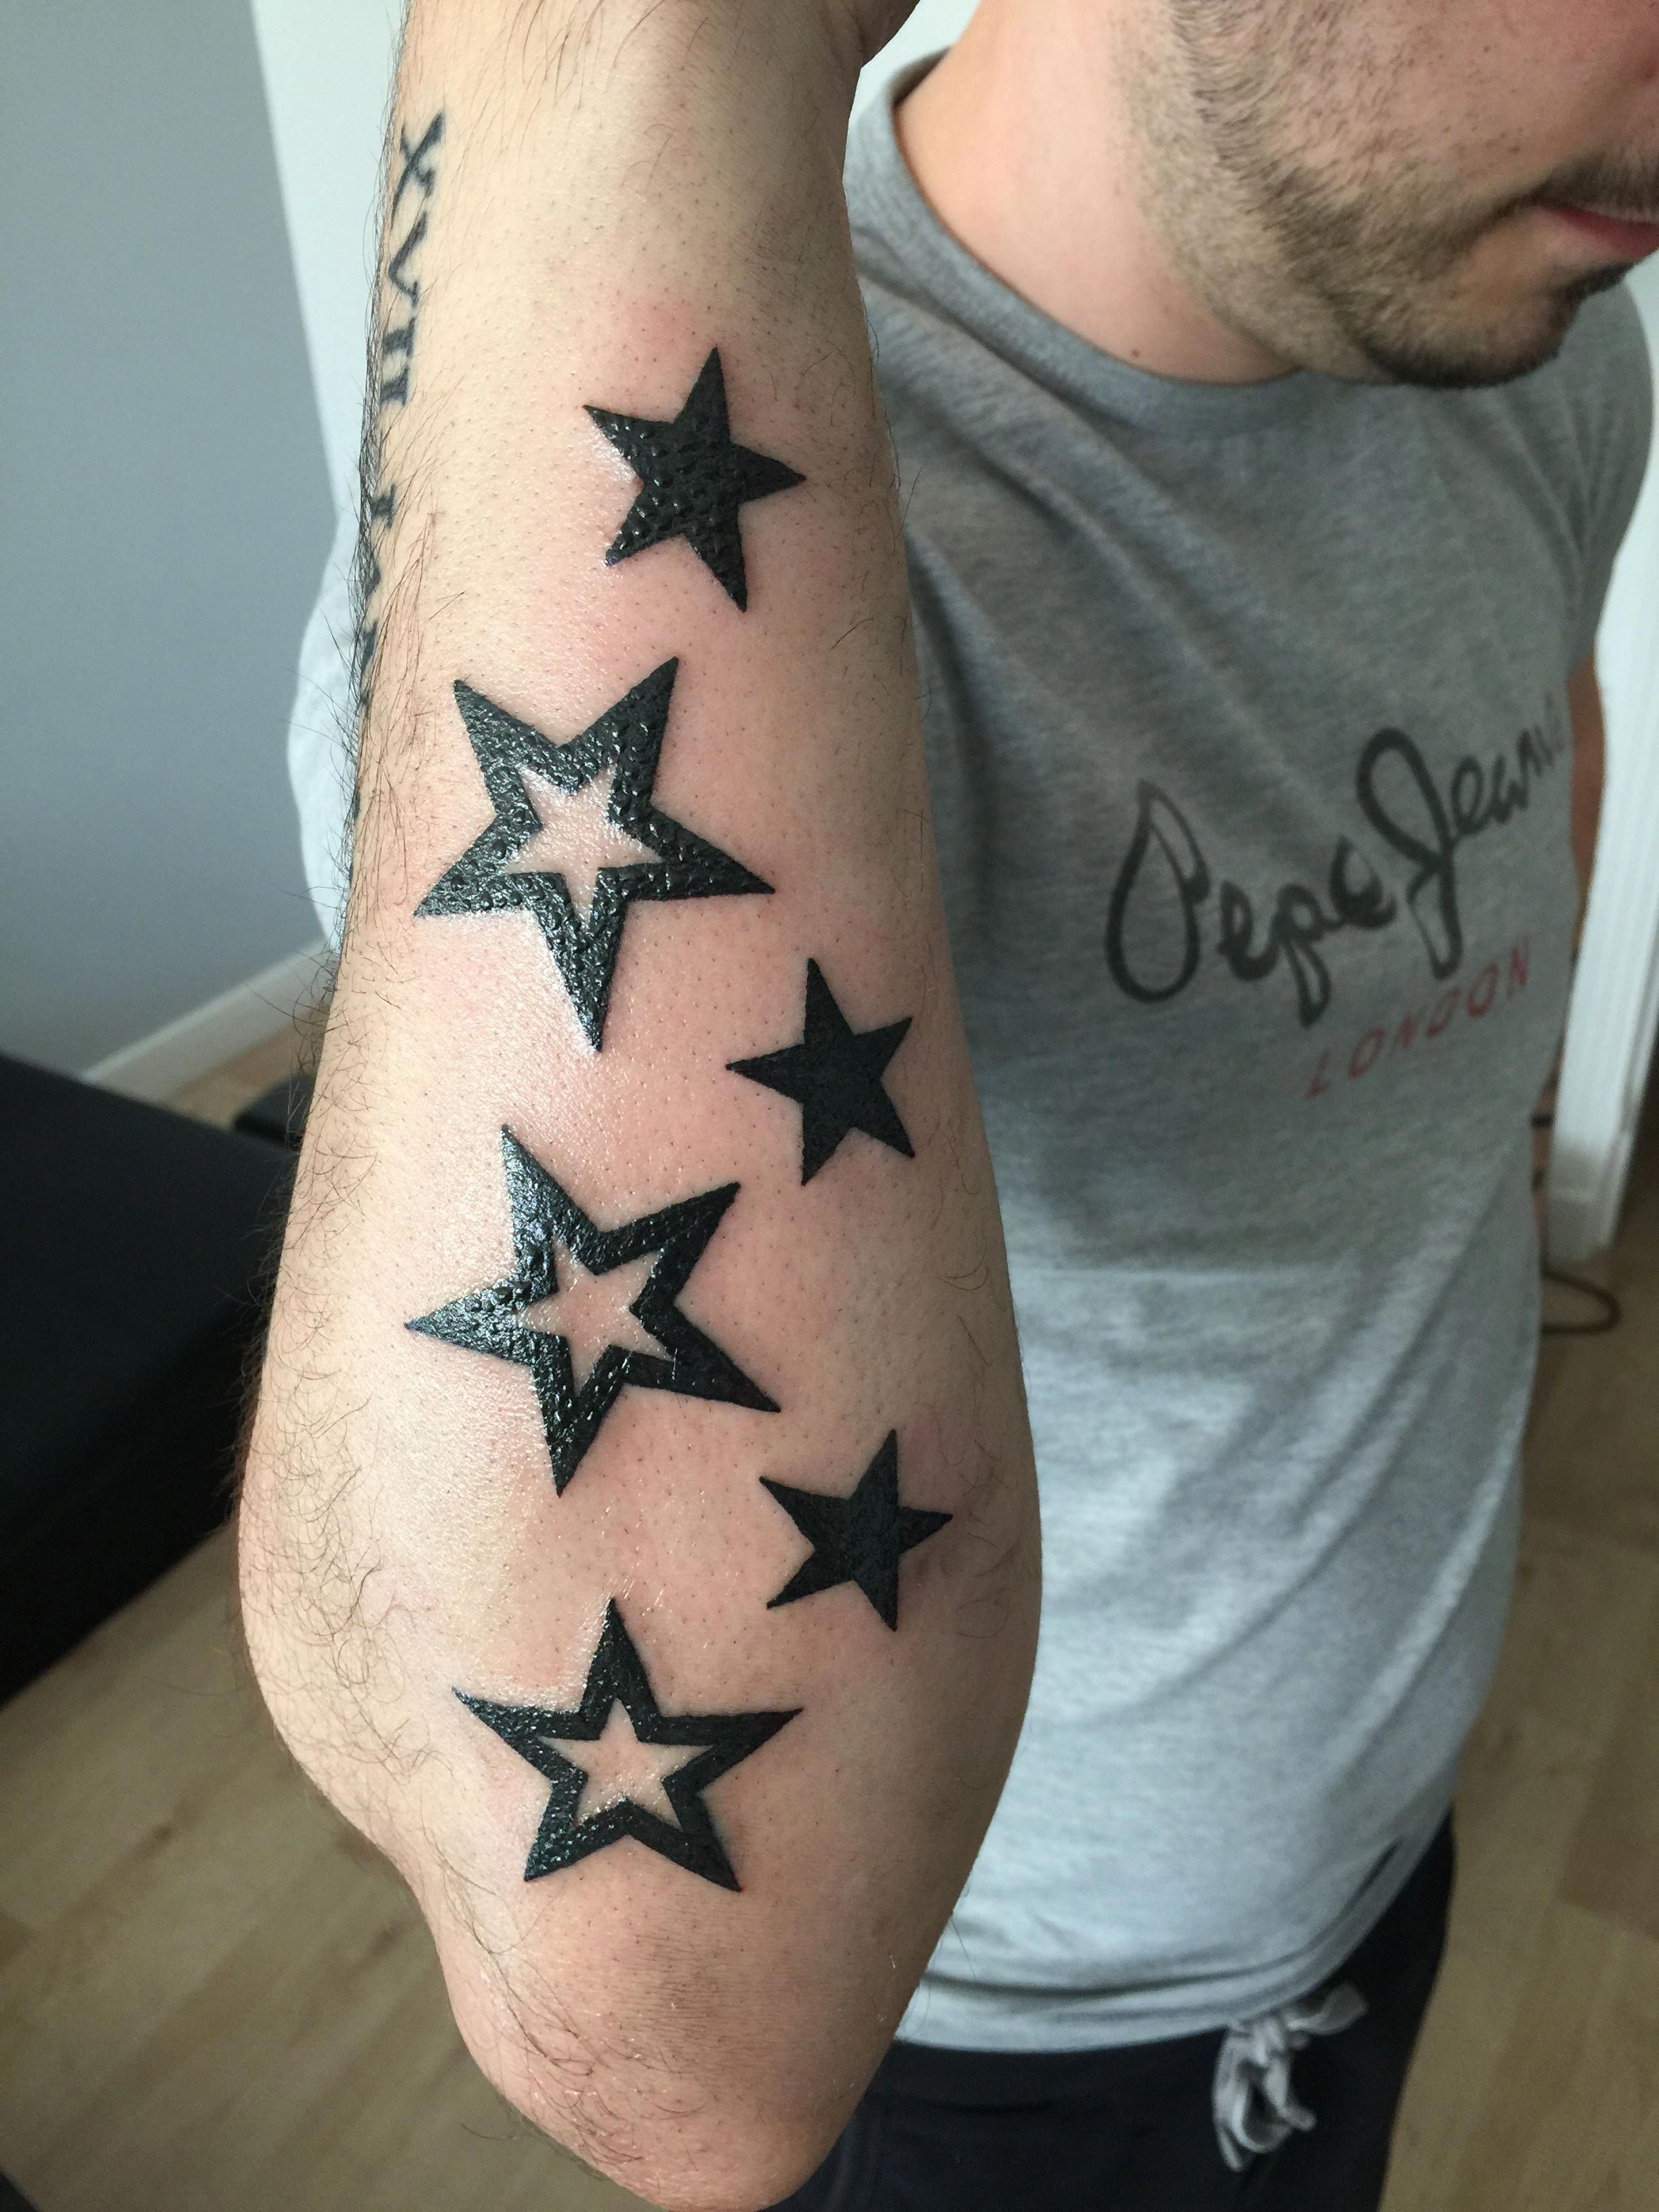 Forearm Tattoos For Men Designs Tattoosformen Star Tattoos Tattoos For Guys Wrist Tattoos For Guys